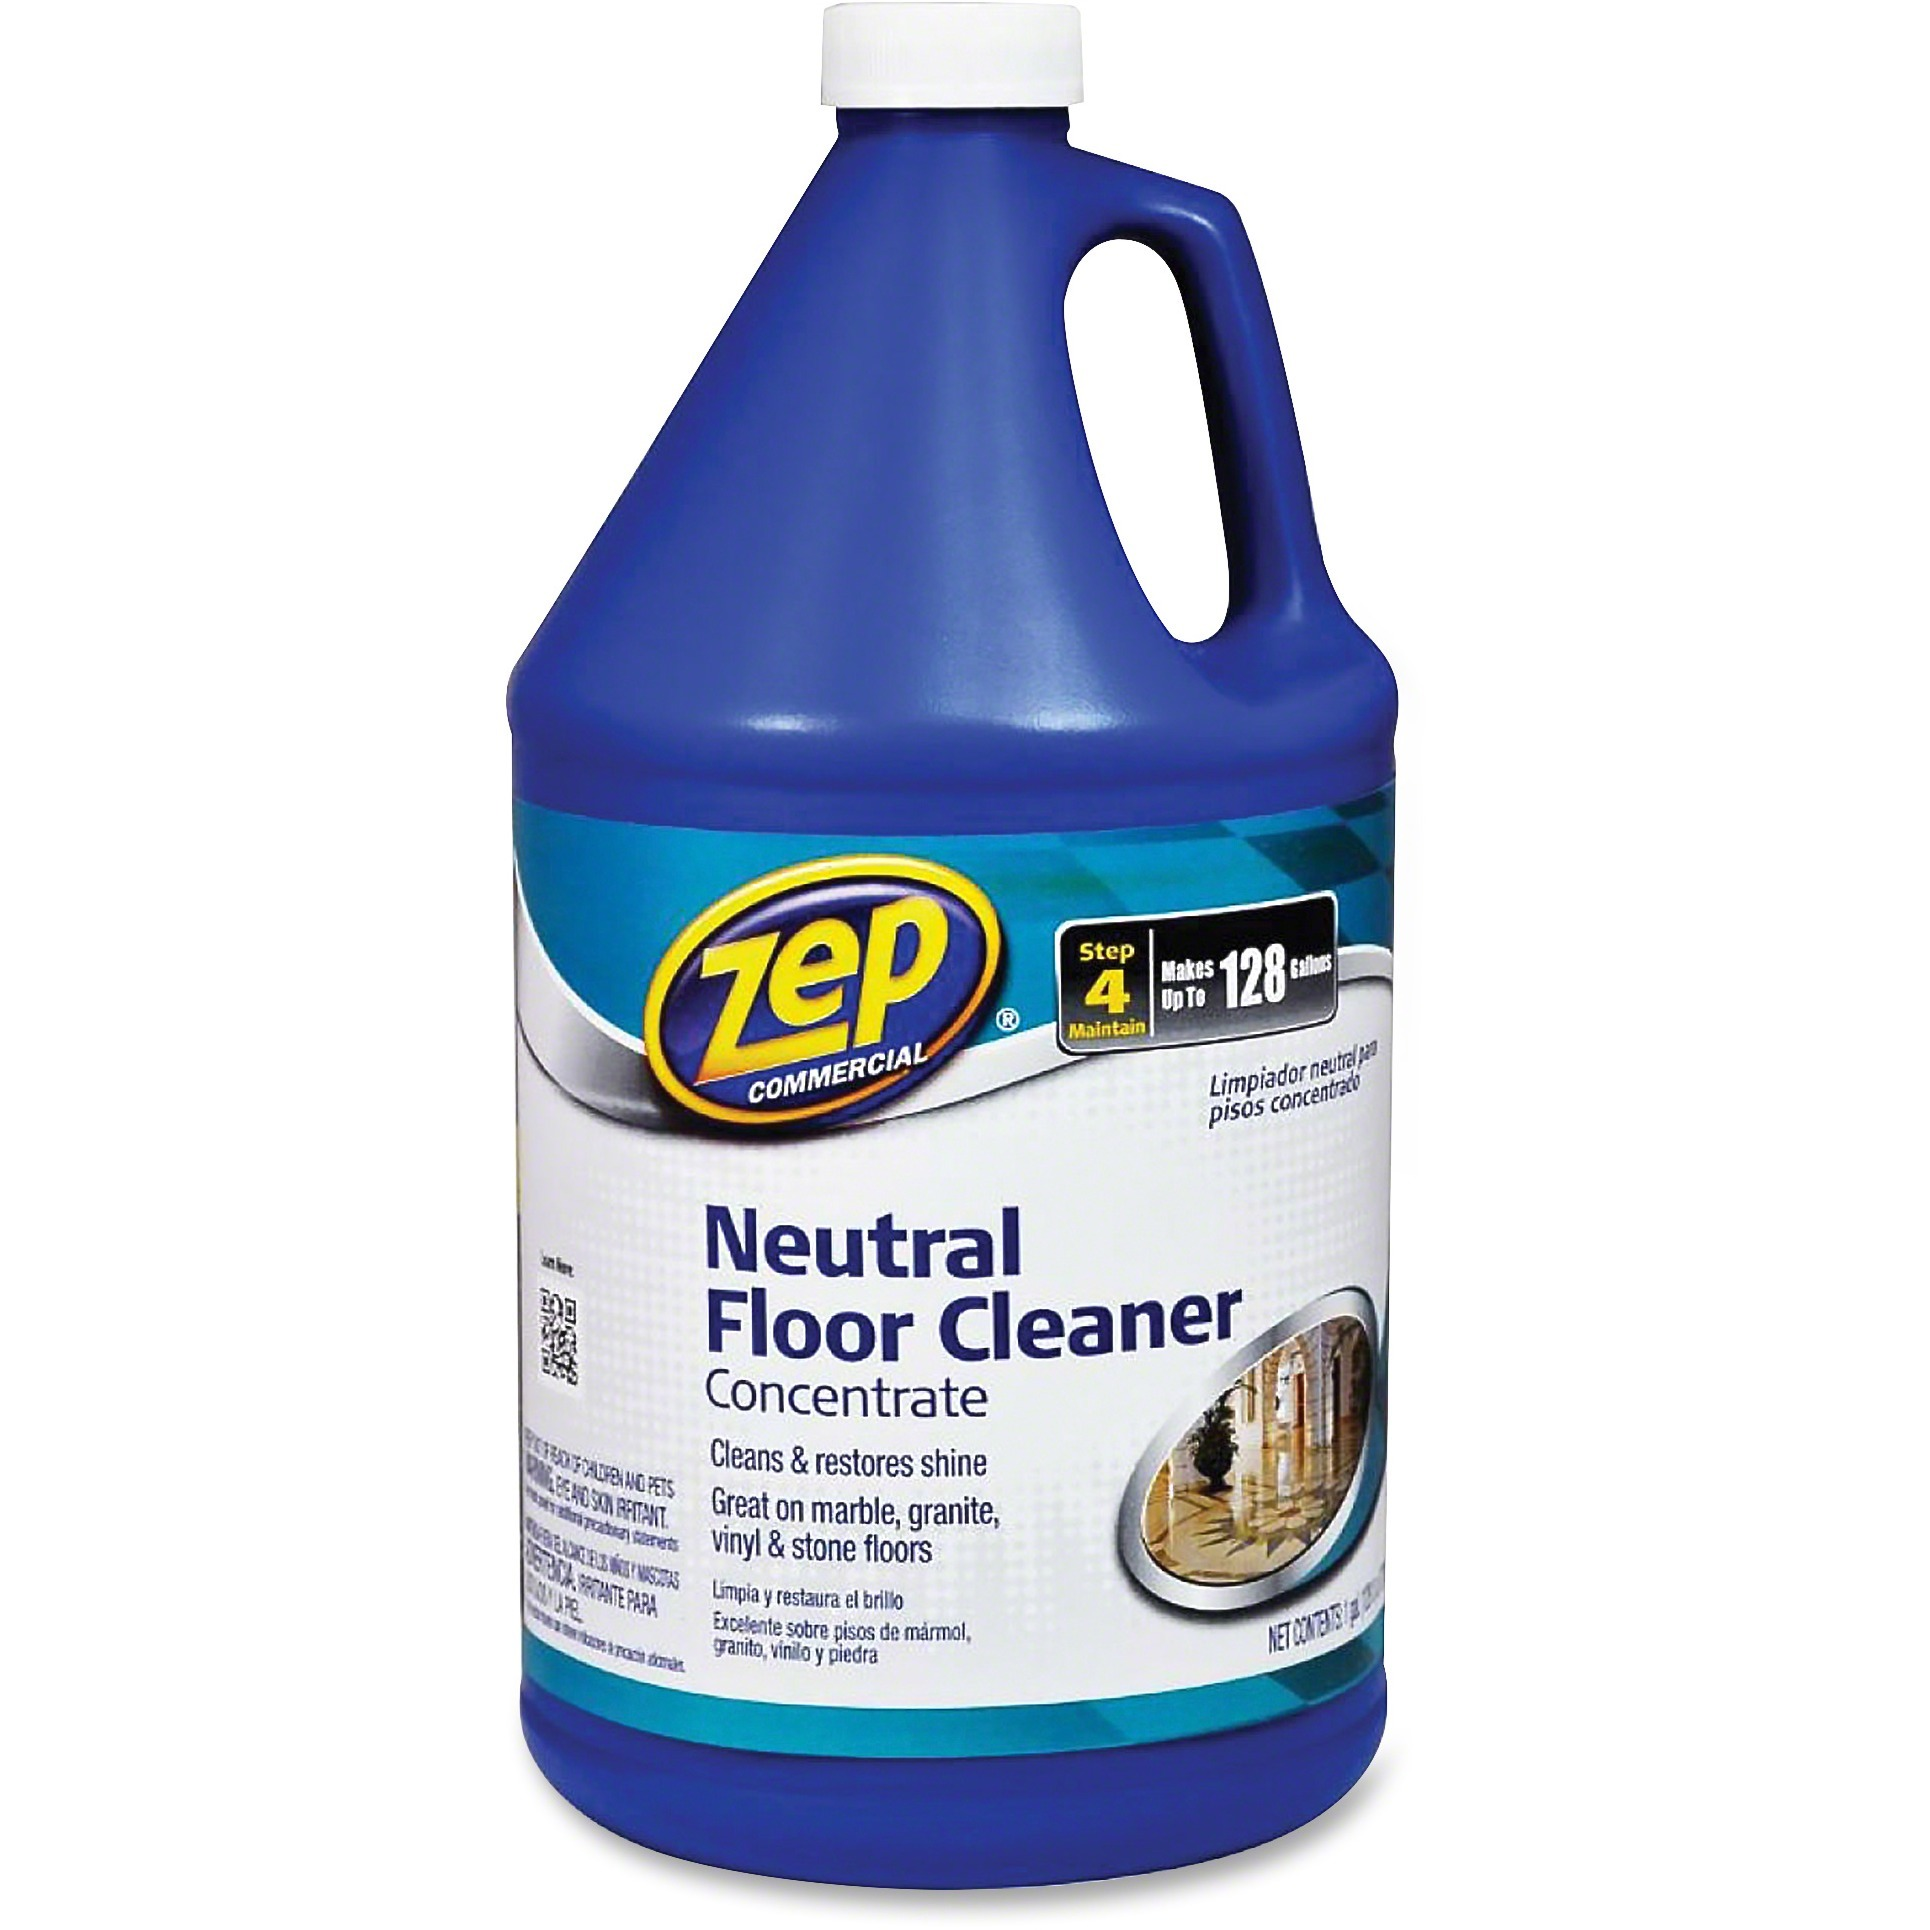 Zep Commercial Zpe1041696 Neutral Floor Cleaner Concentrate 1 Each Blue Walmart Com